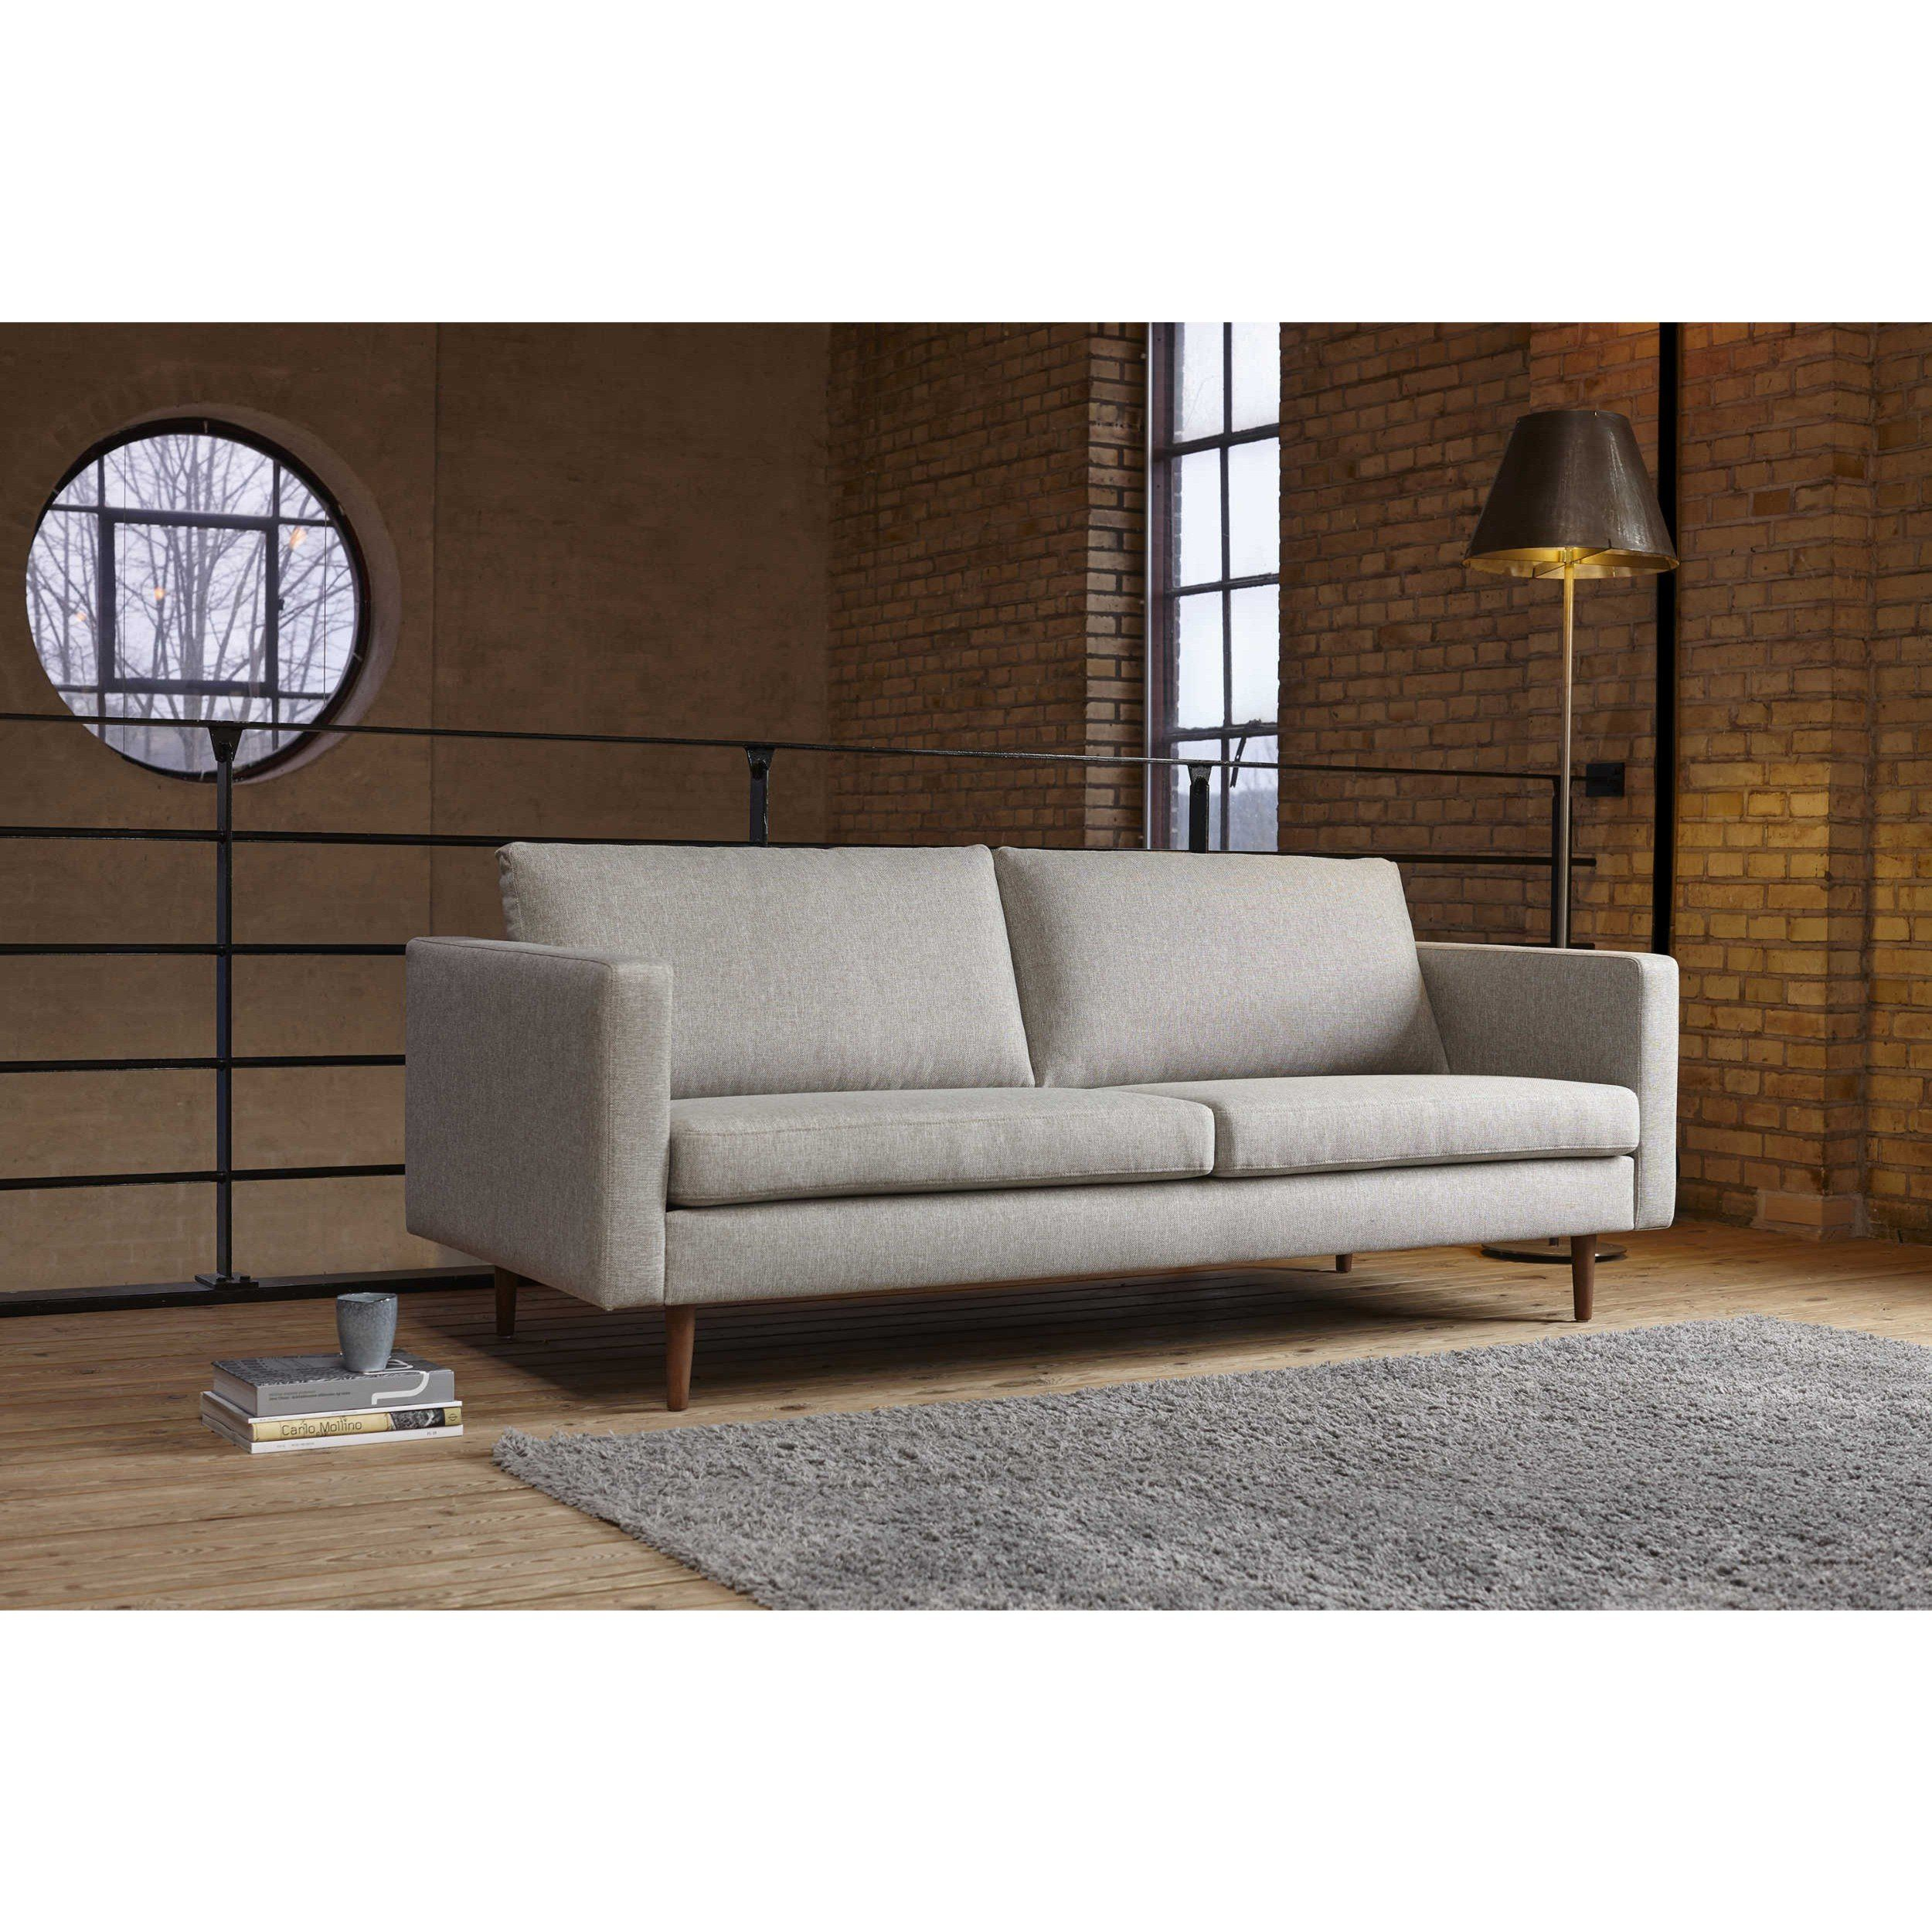 Naturmöbel Sofa Sofa K370 Otto In 2019 Sessel Sofa Couch Und Furniture